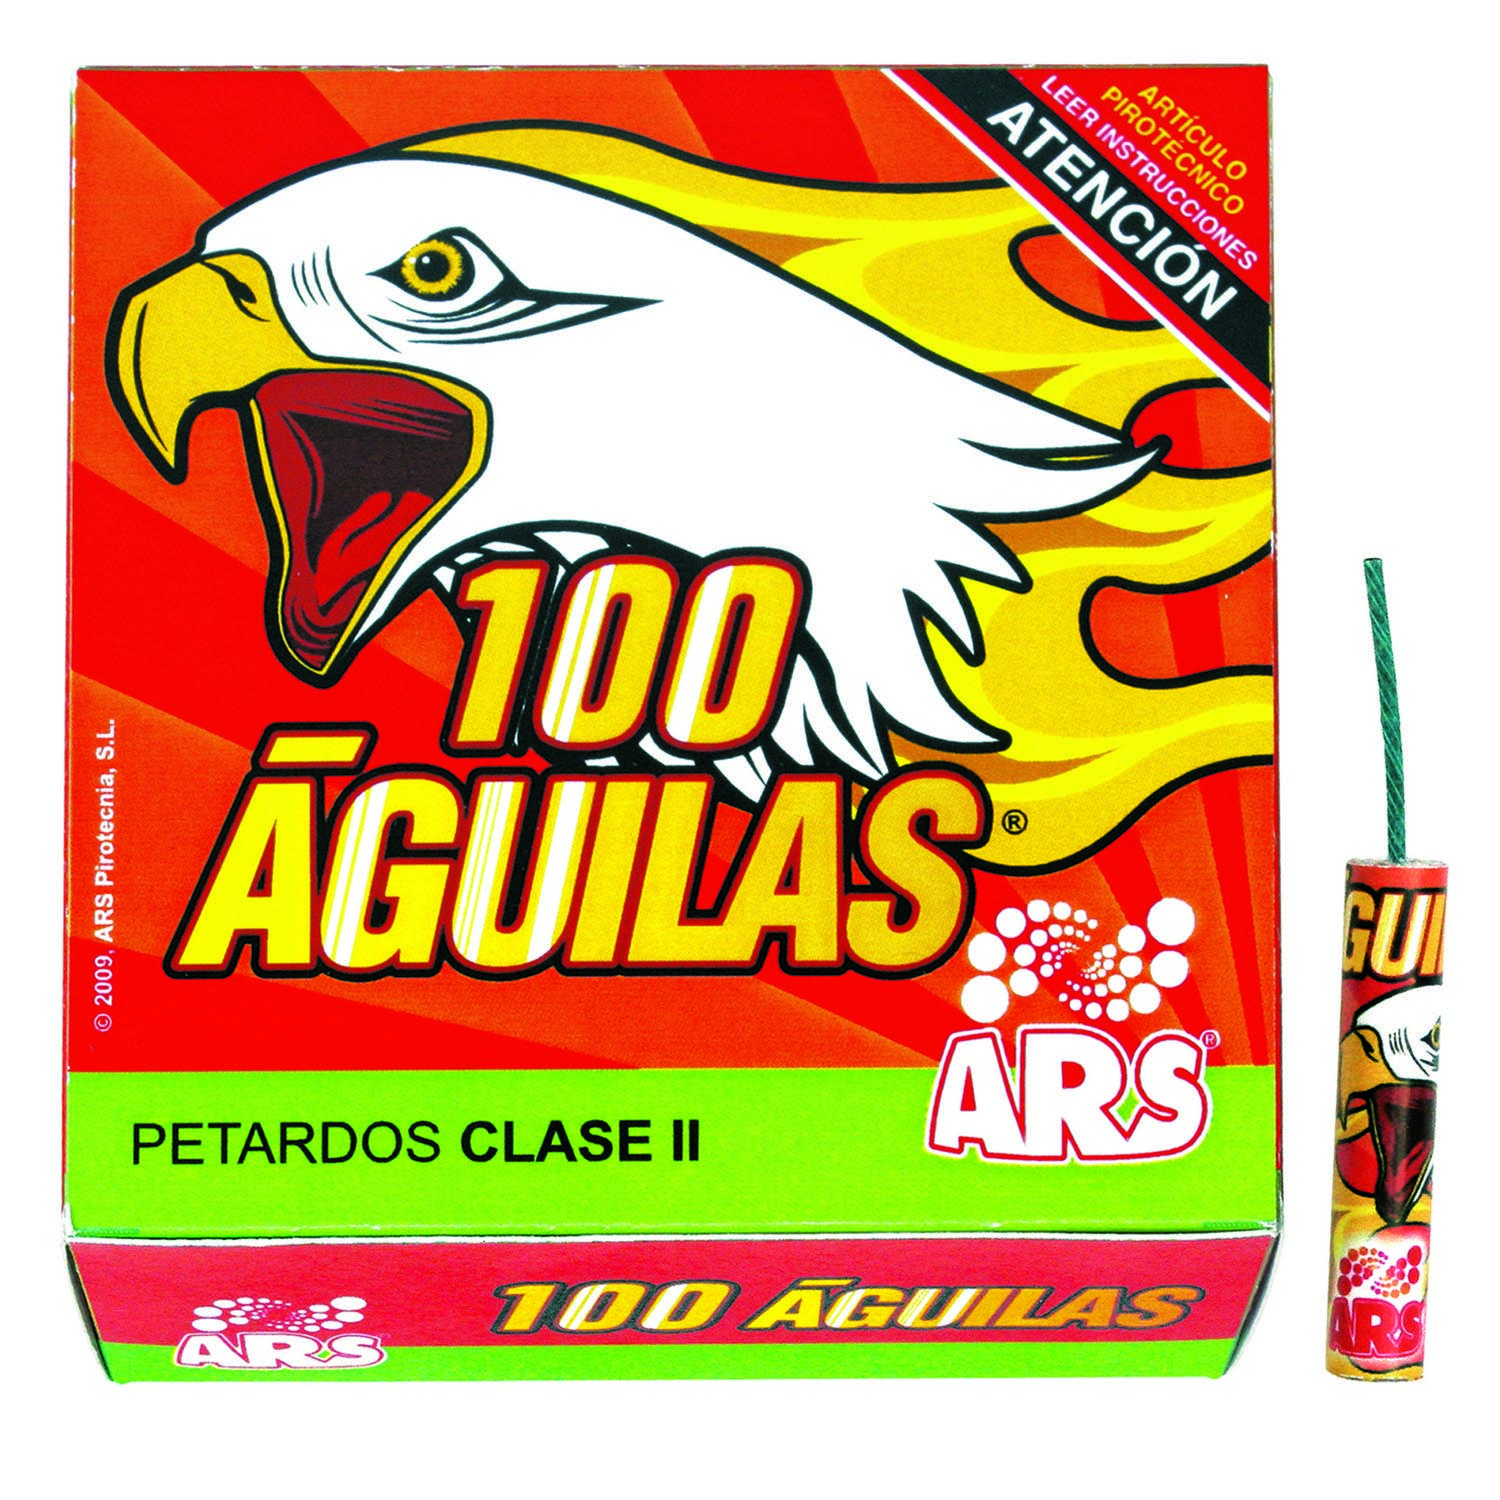 100 Aguiles